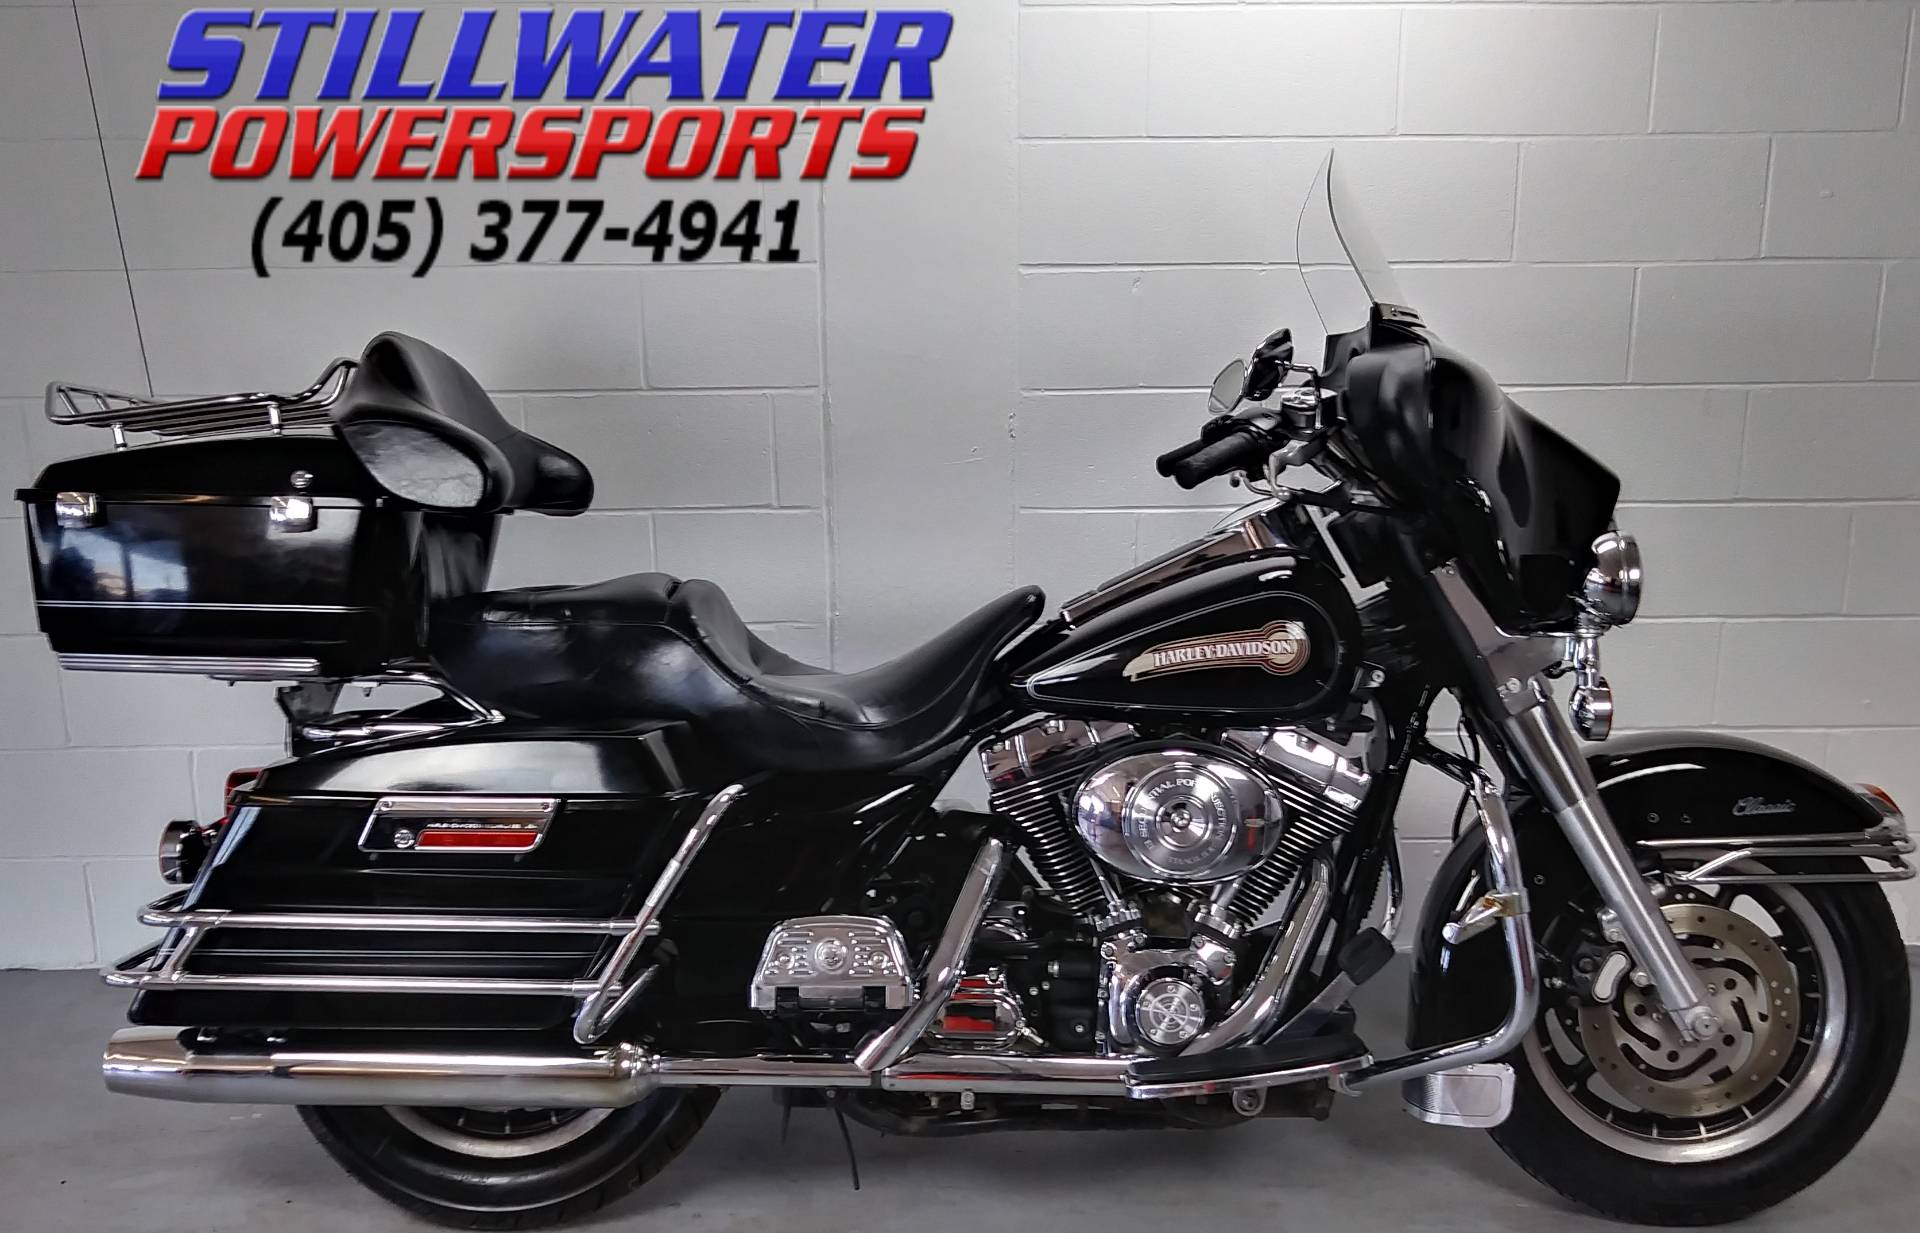 2006 Harley-Davidson Electra Glide® Classic in Stillwater, Oklahoma - Photo 1